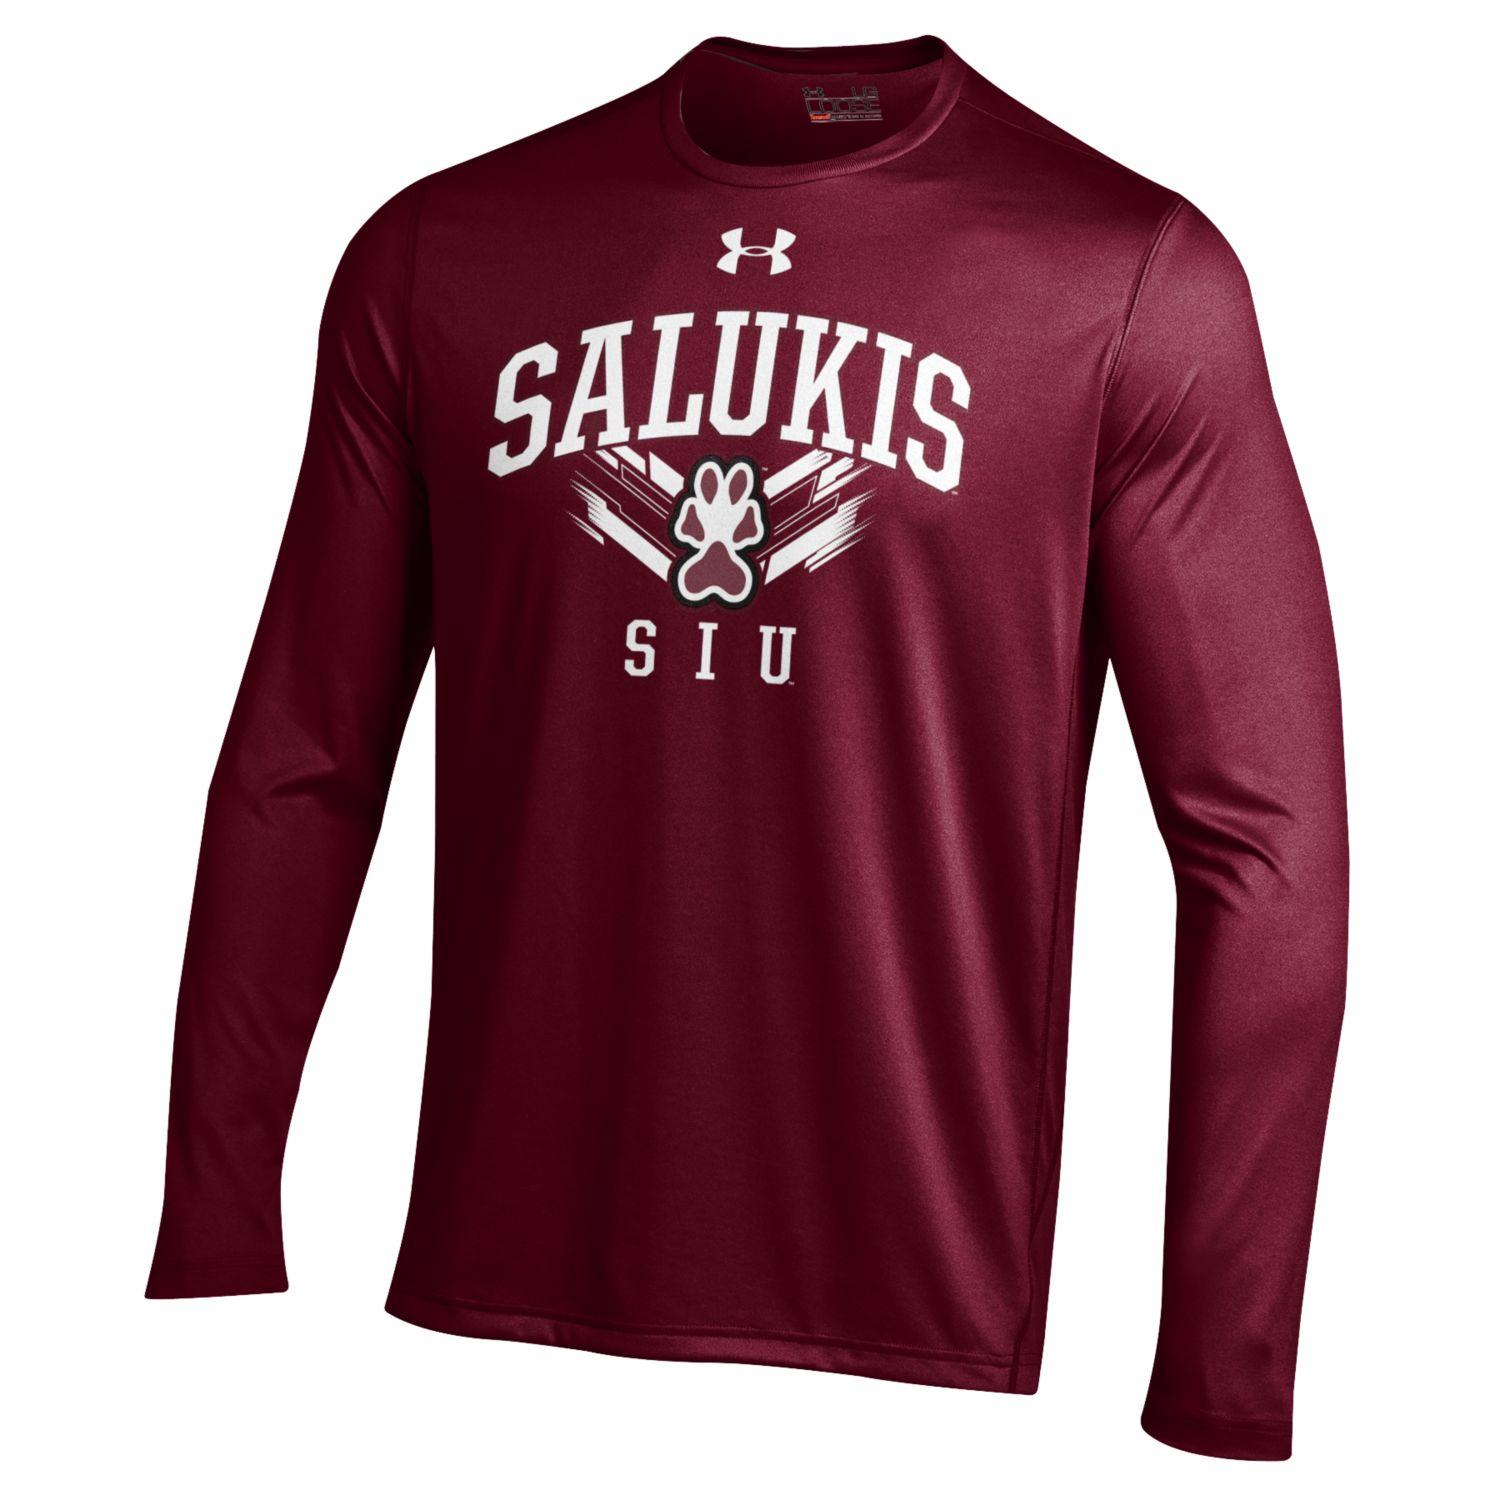 Image for the UNDER ARMOUR® SIU SALUKIS PERFORMANCE LONG SLEEVE T-SHIRT product